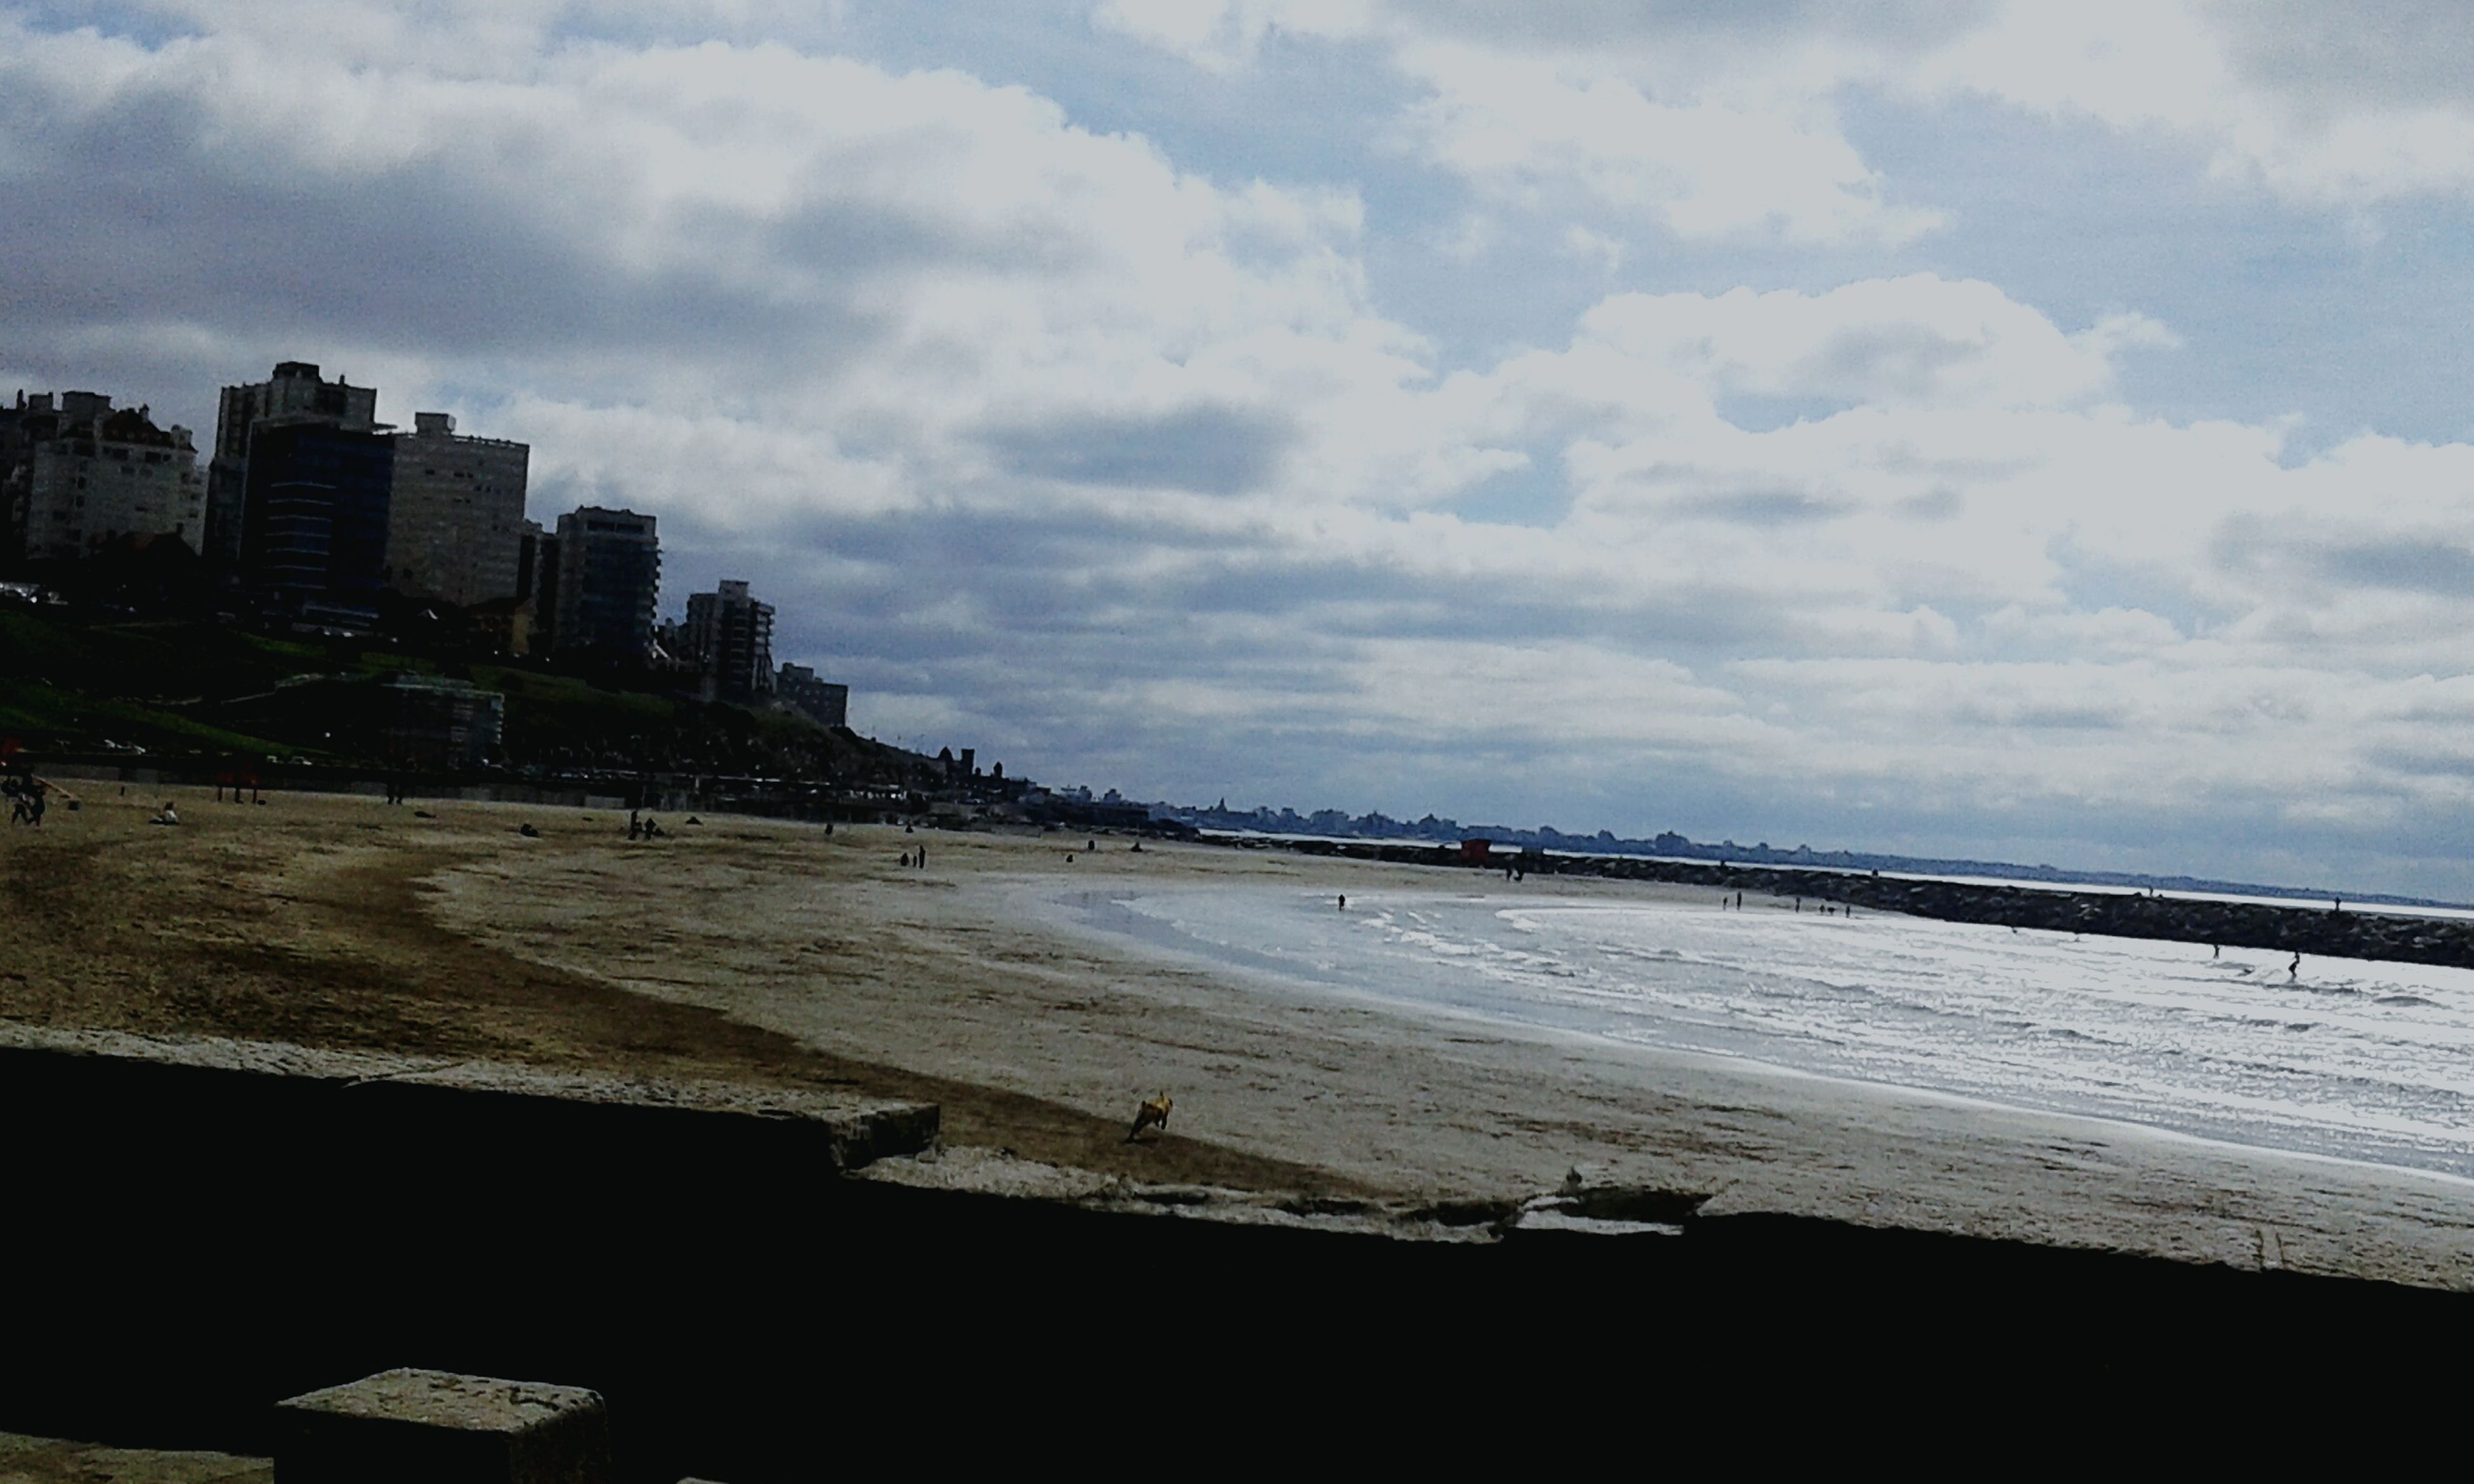 sky, building exterior, architecture, built structure, water, cloud - sky, sea, beach, cloudy, city, cloud, shore, incidental people, nature, day, outdoors, sand, high angle view, cityscape, bird